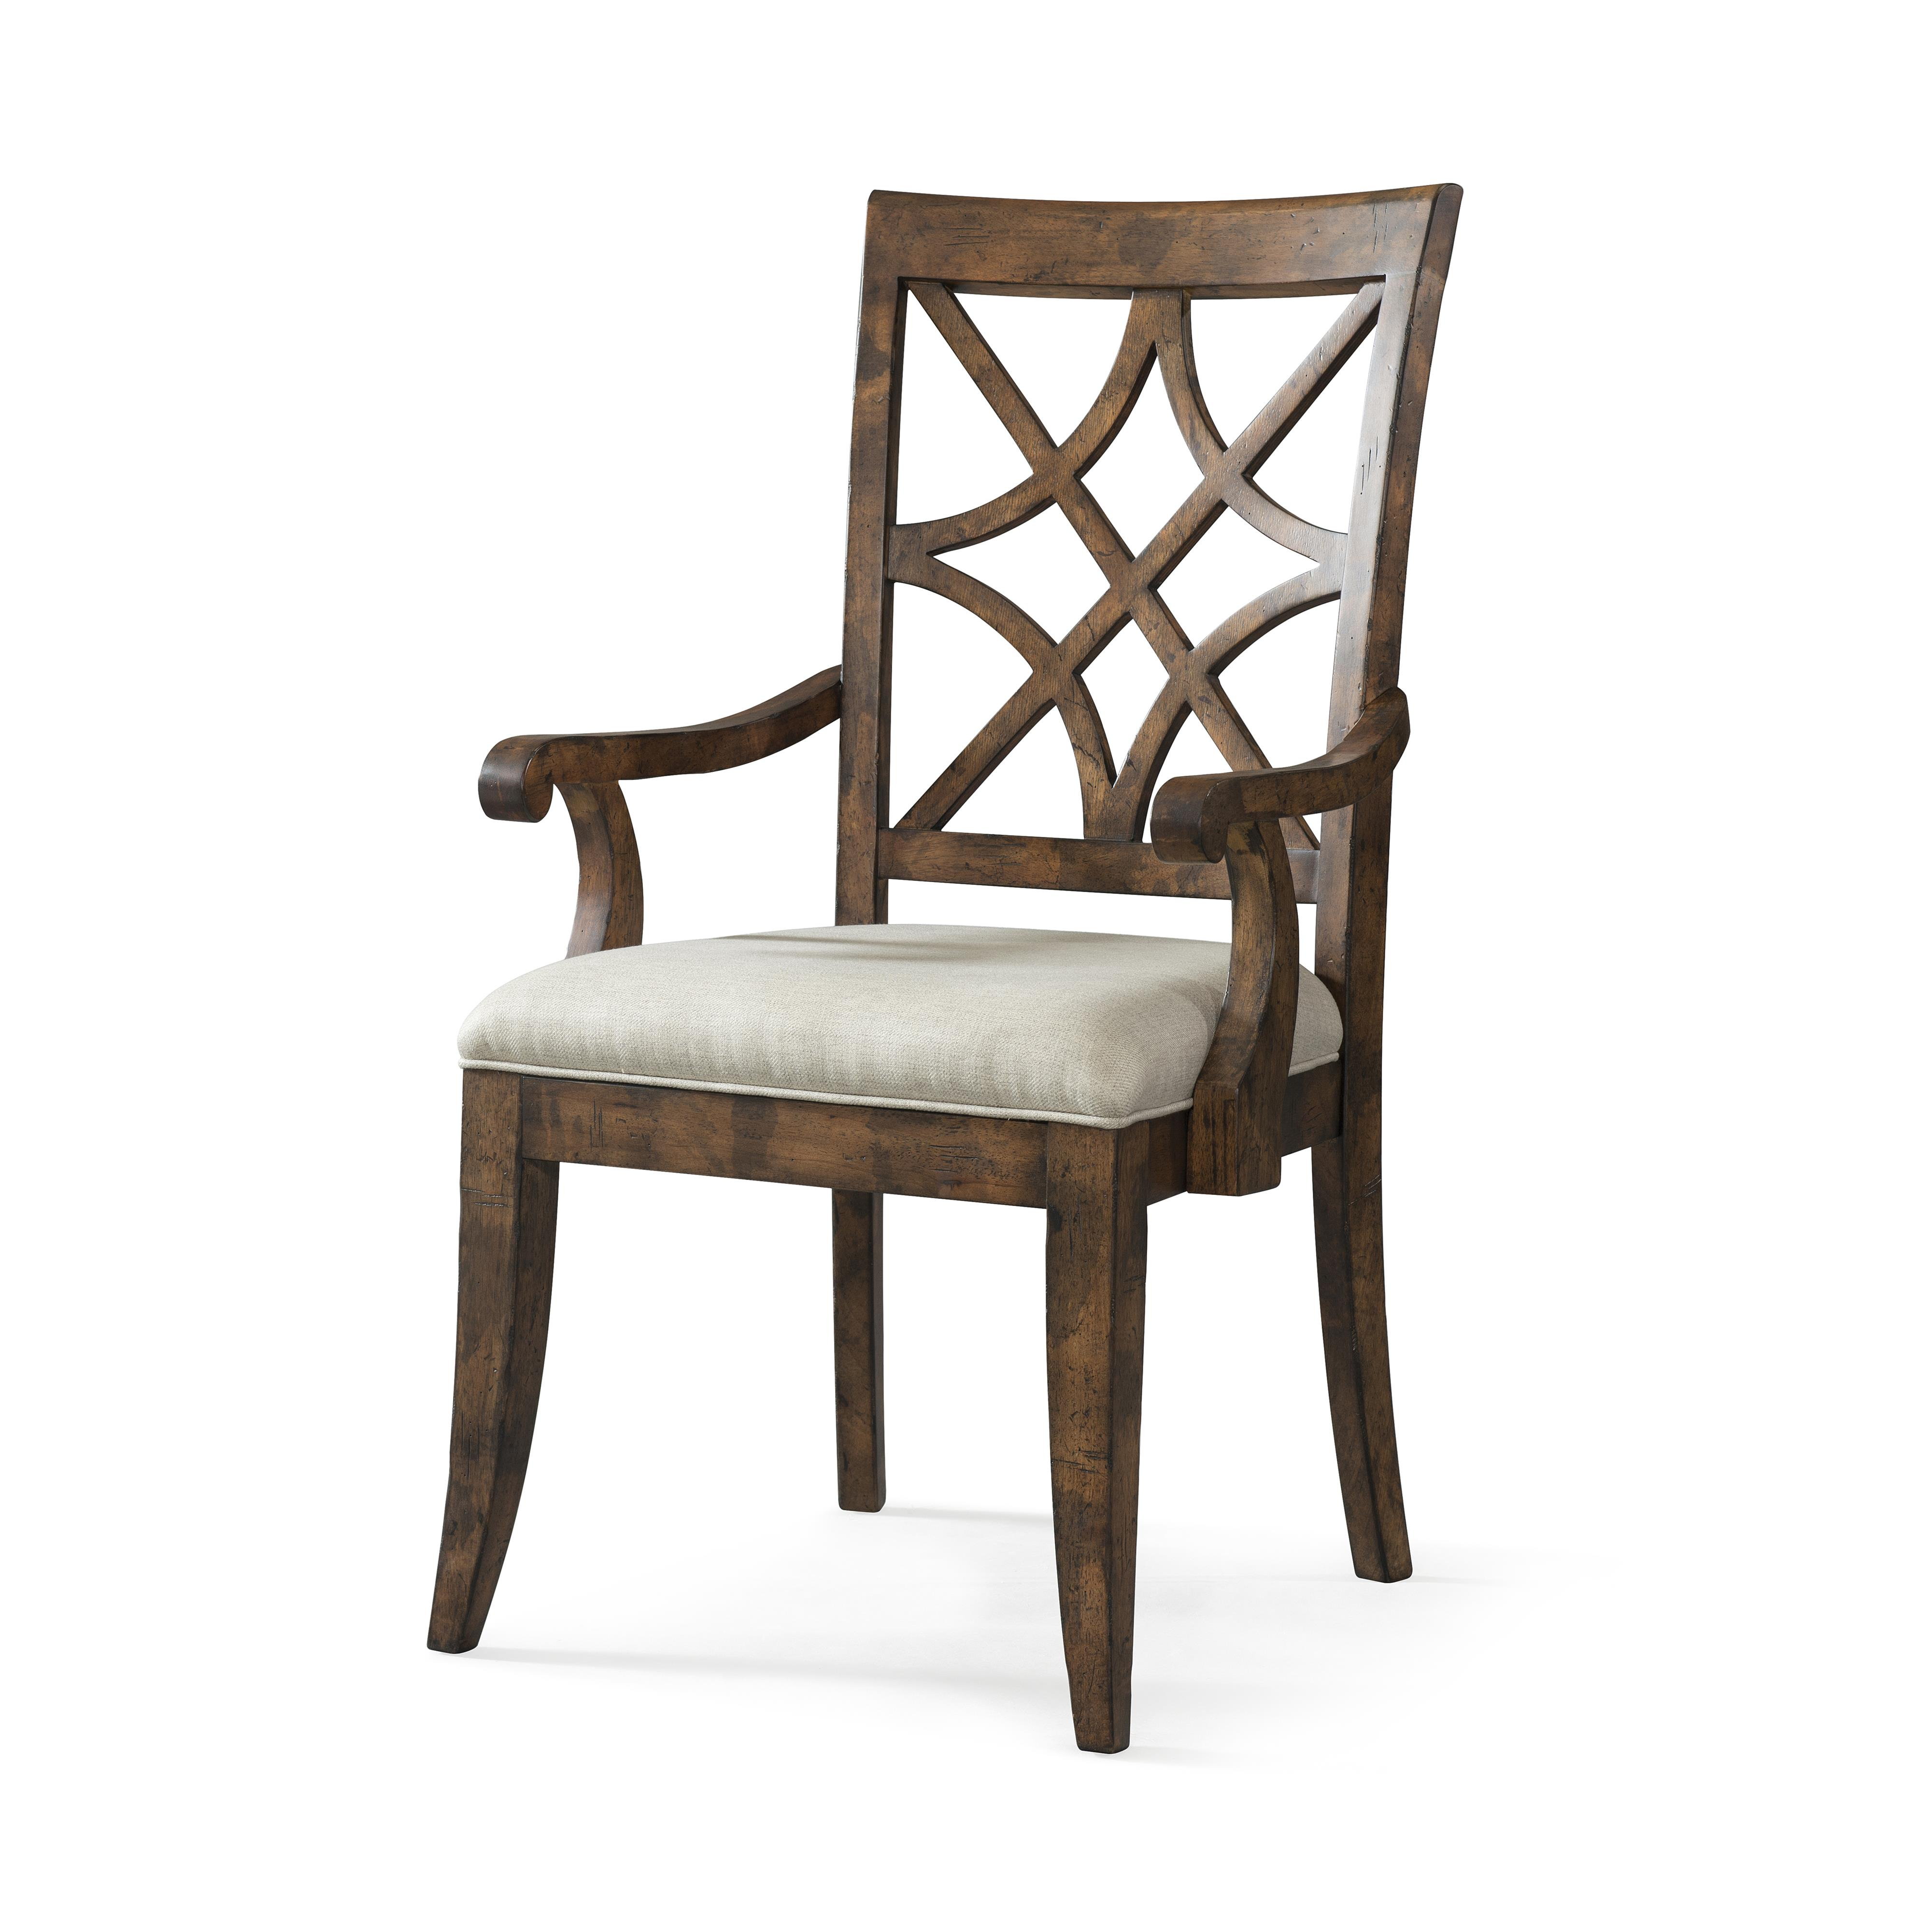 Trisha Yearwood Home Collection By Klaussner Trisha Yearwood Home Nashville Arm Chair Old